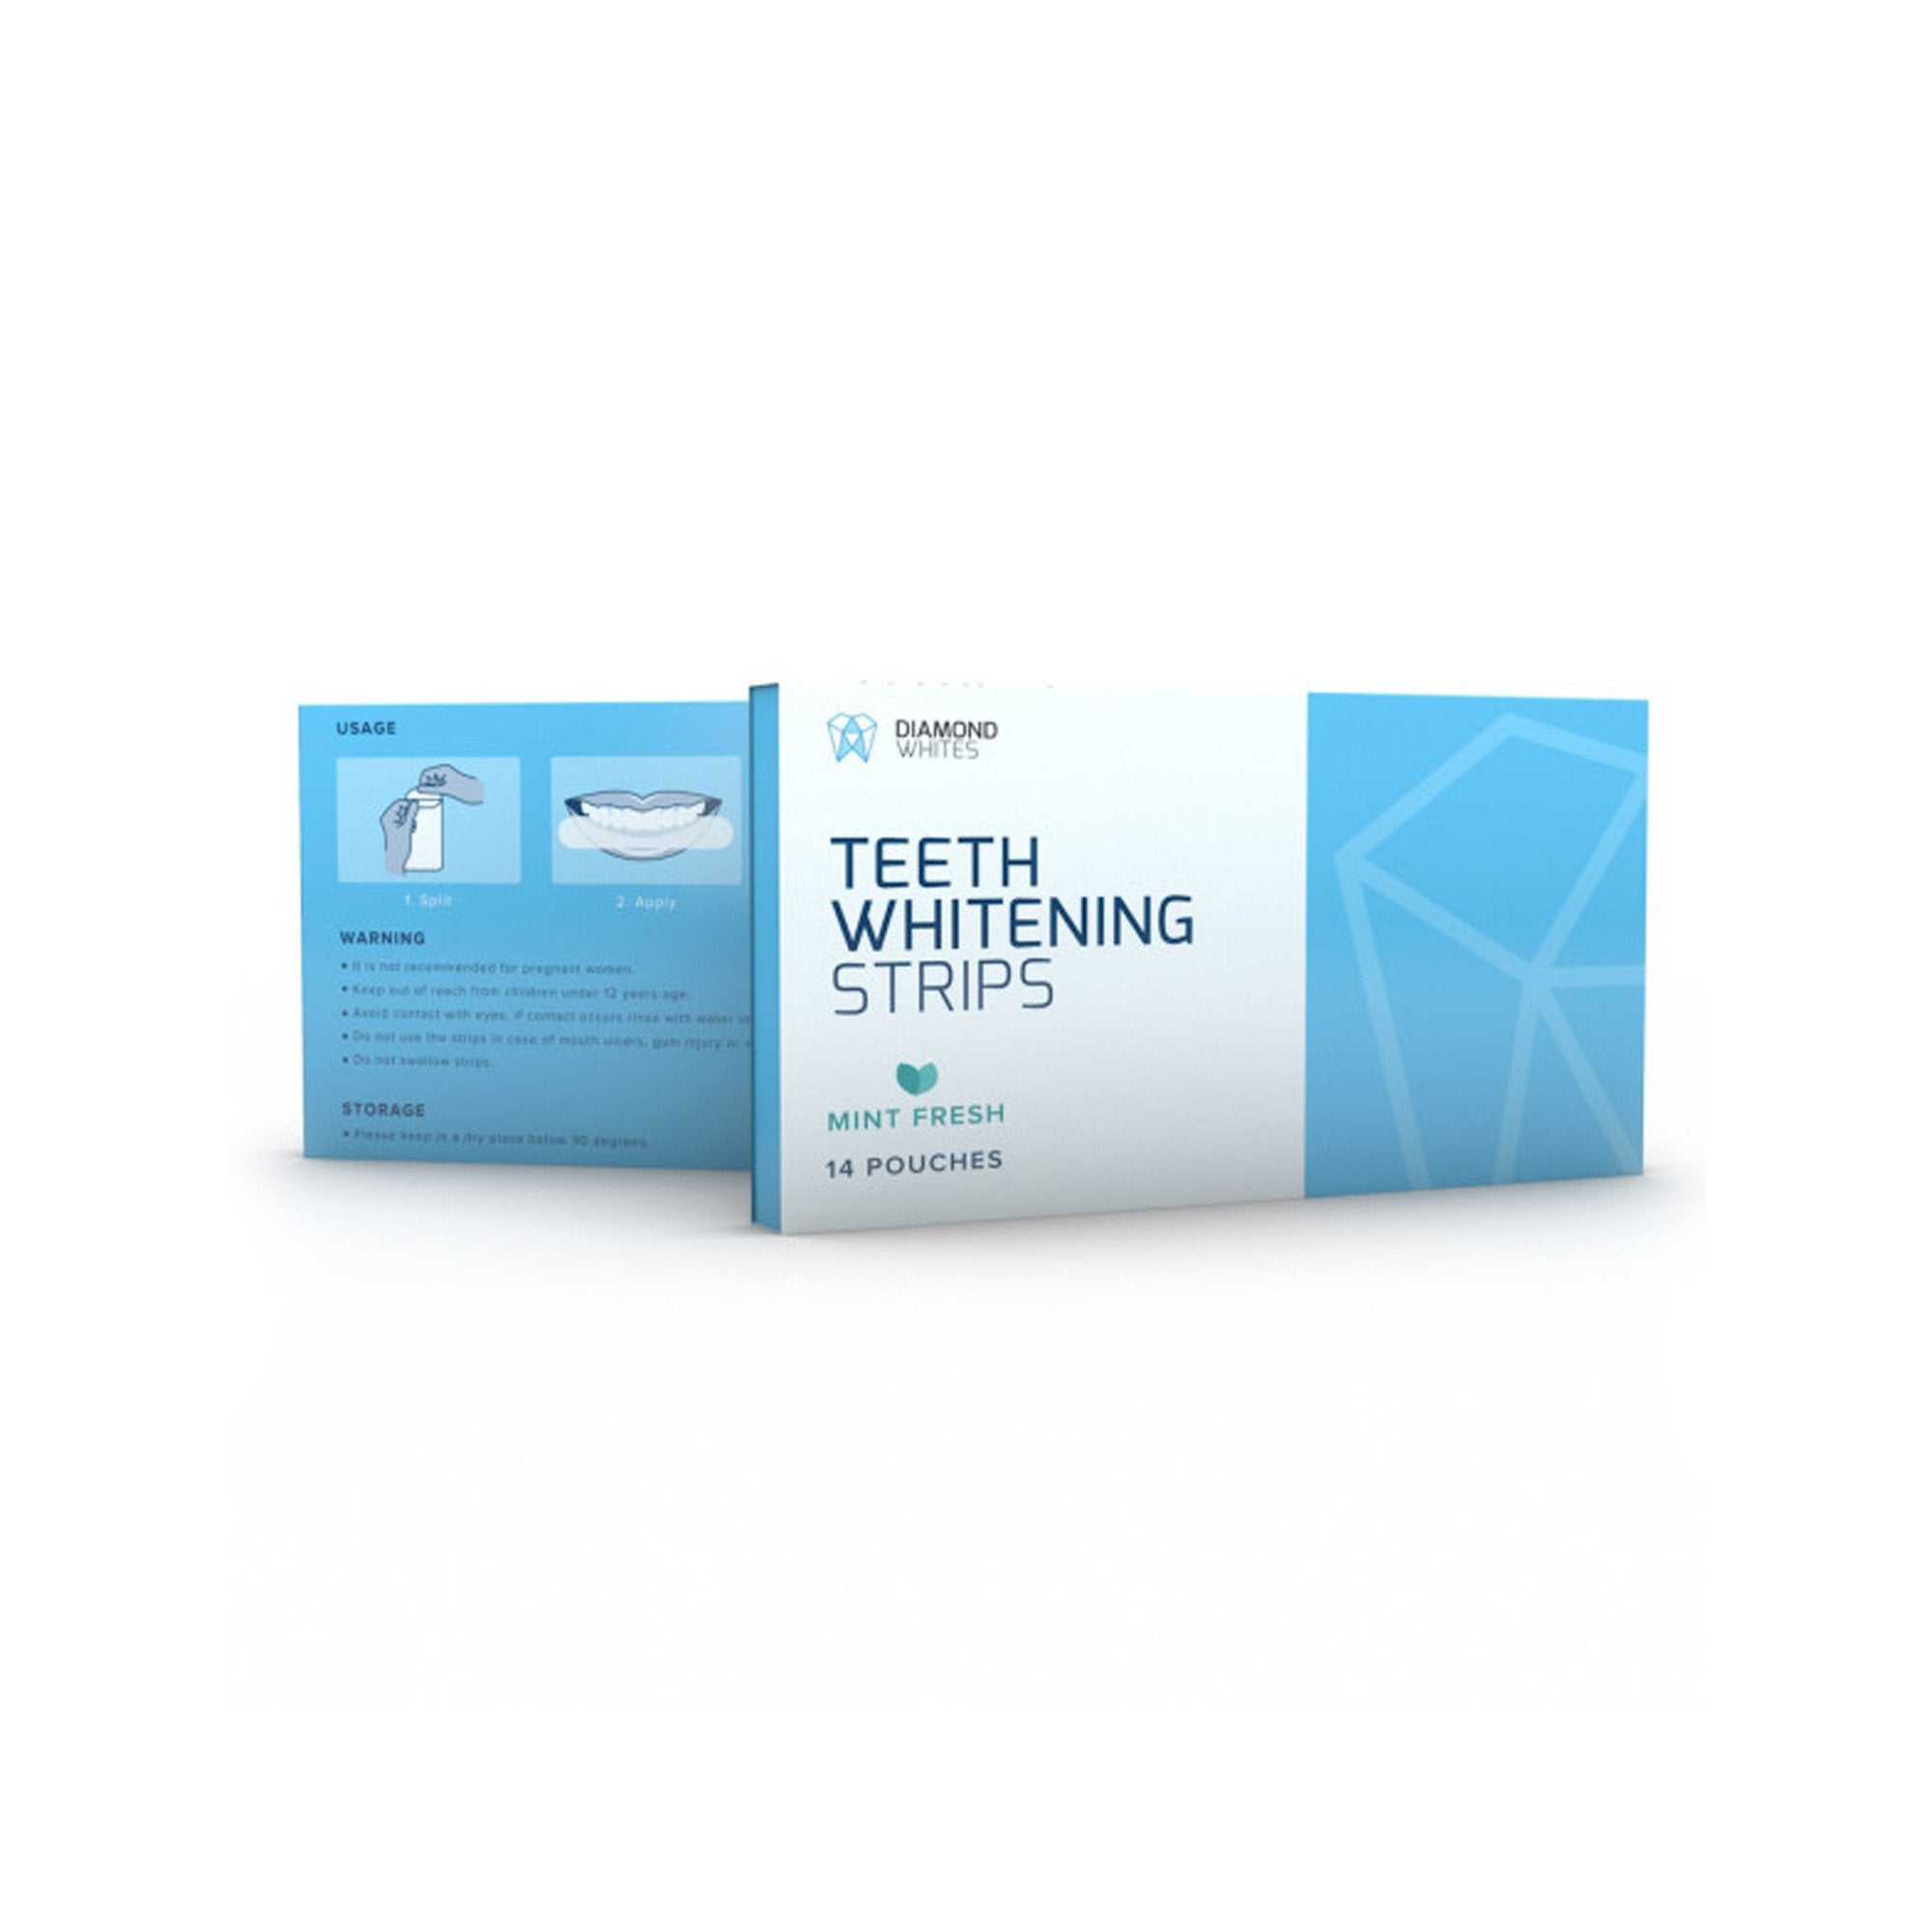 Diamond Whites Teeth Whitening Strips